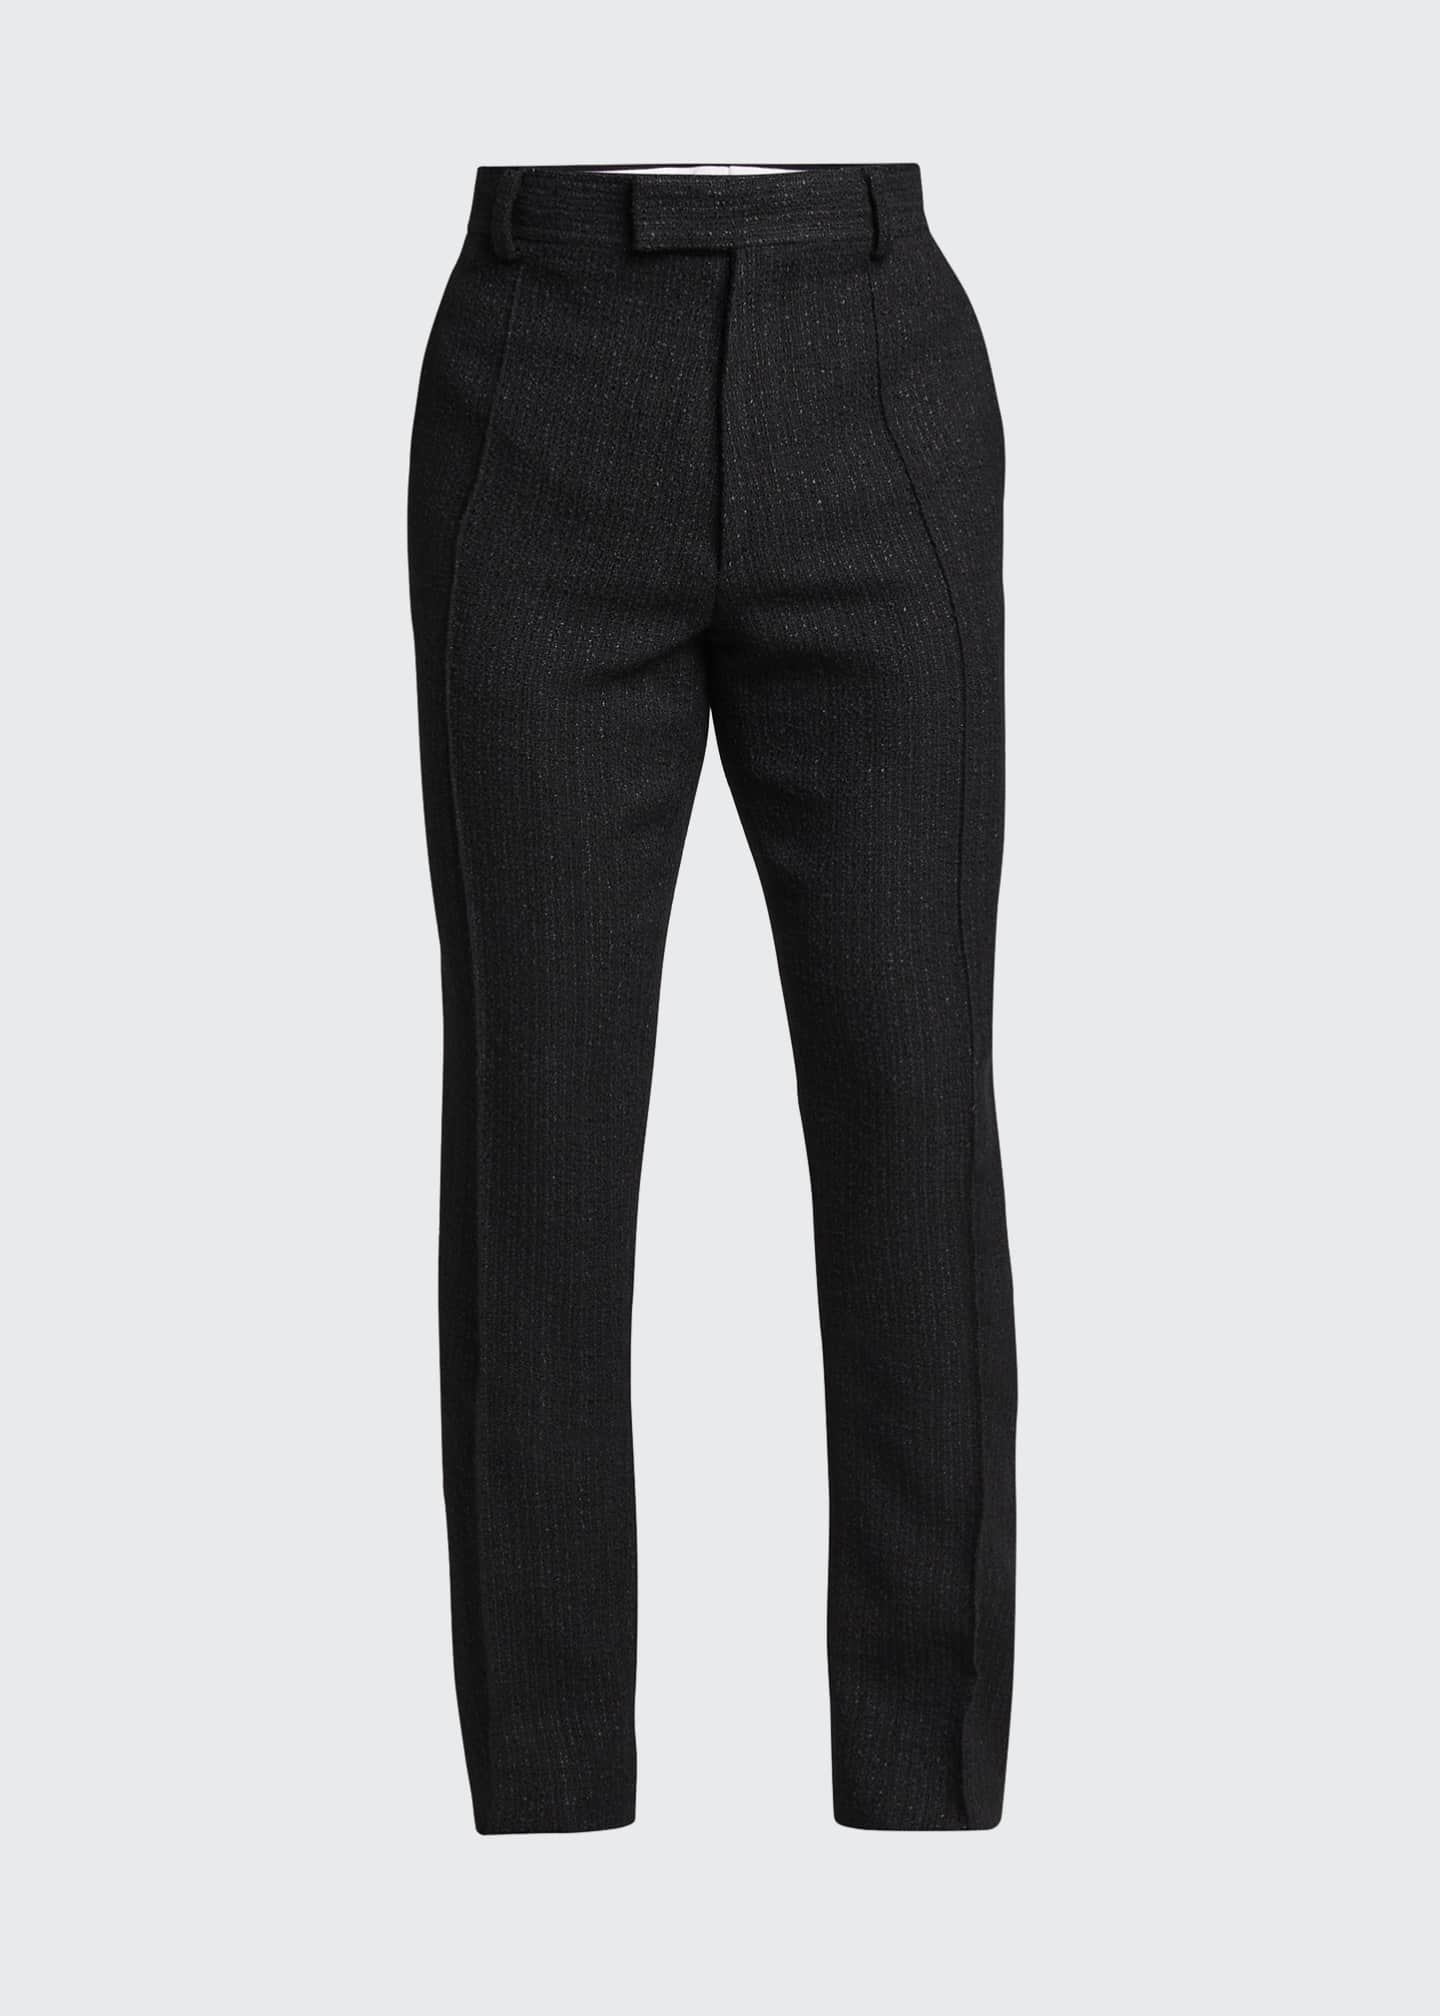 Image 5 of 5: Men's Straight-Leg Boucle Wool-Blend Pants